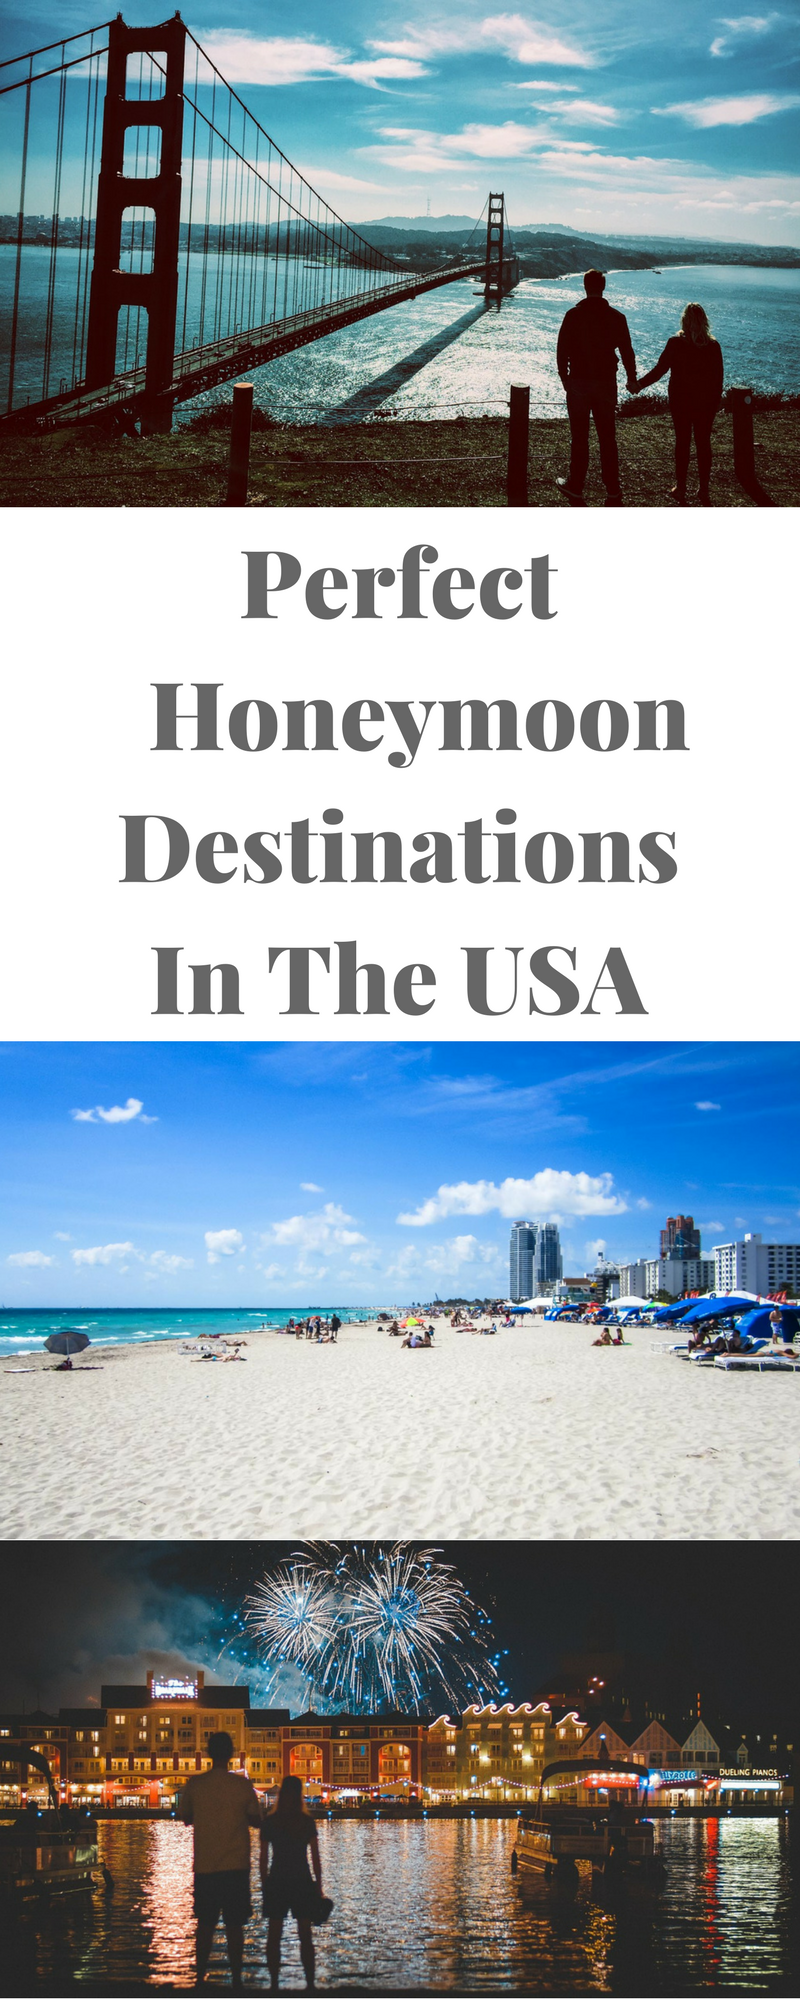 The USA is home to tons of amazing honeymoon destinations. Here are a few of our favorites.